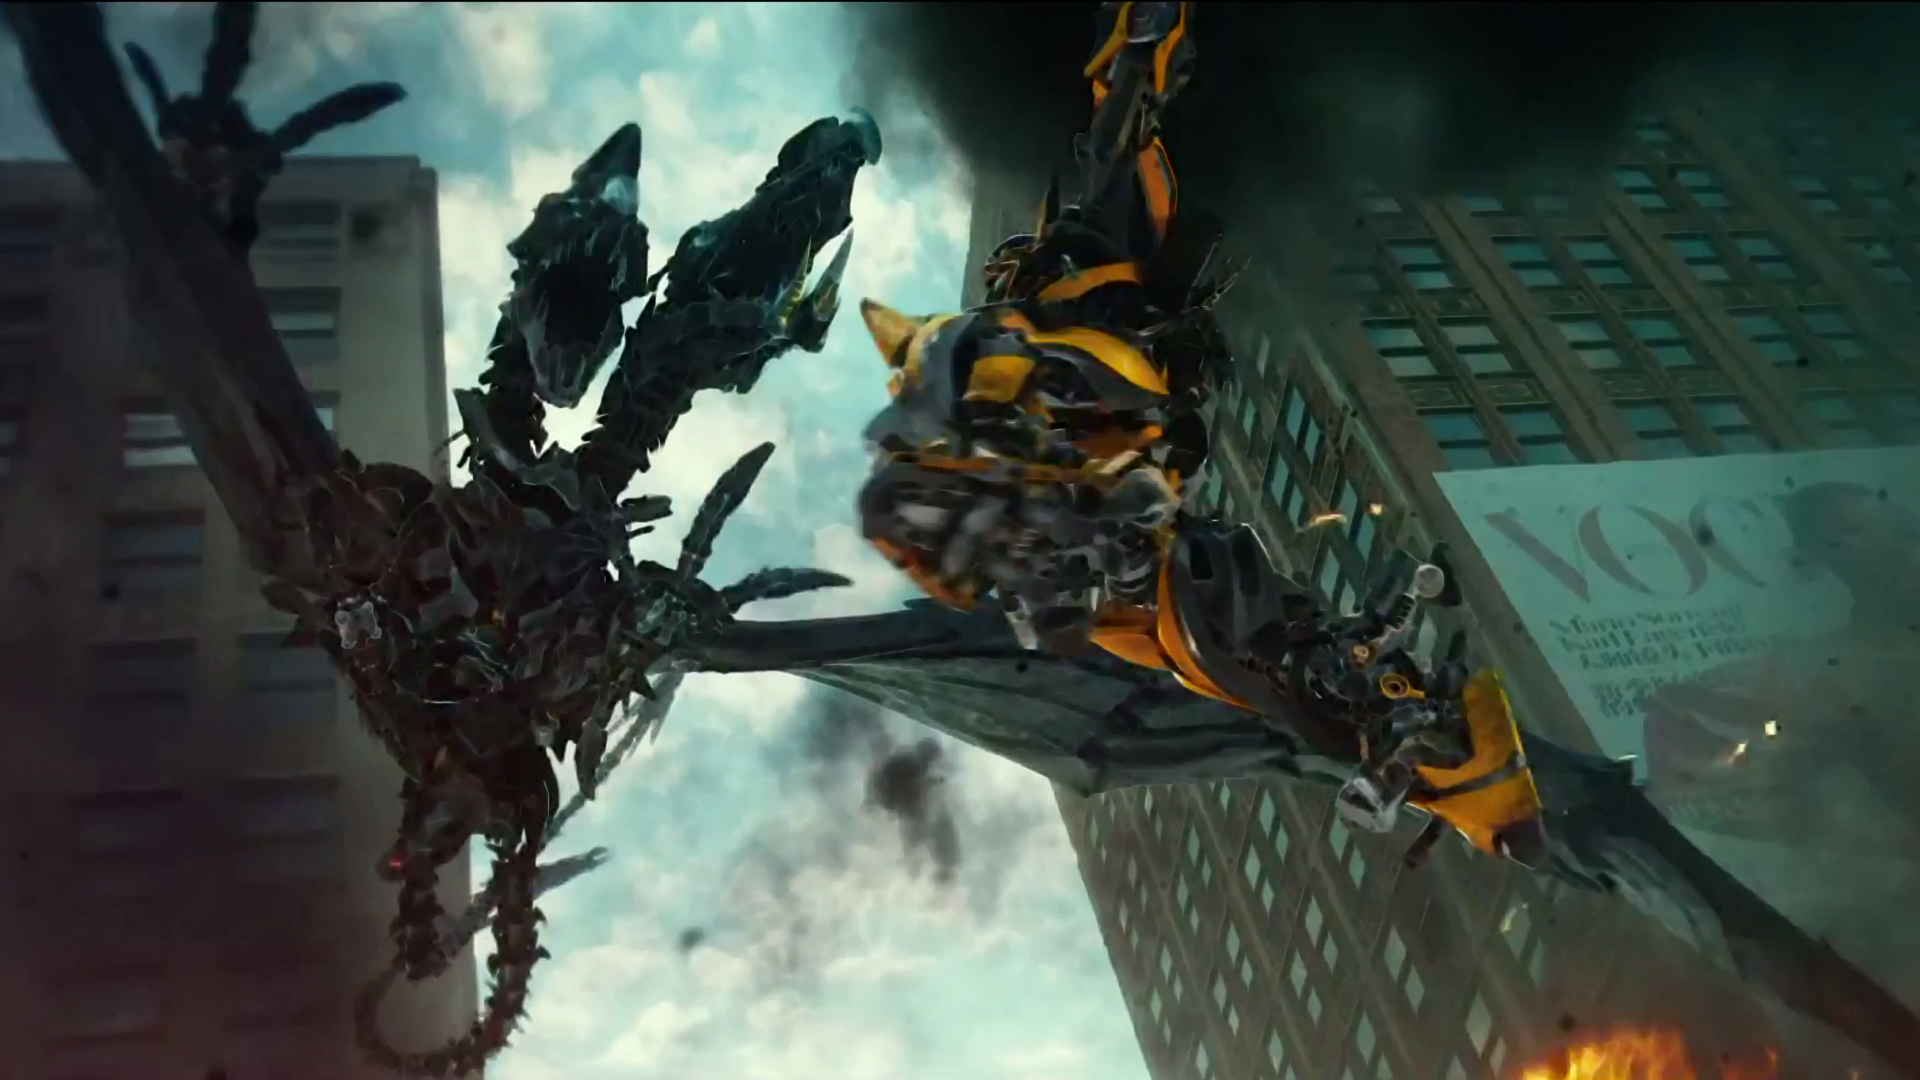 Transformers 4 Wallpaper Bumblebee Bumblebee fighting